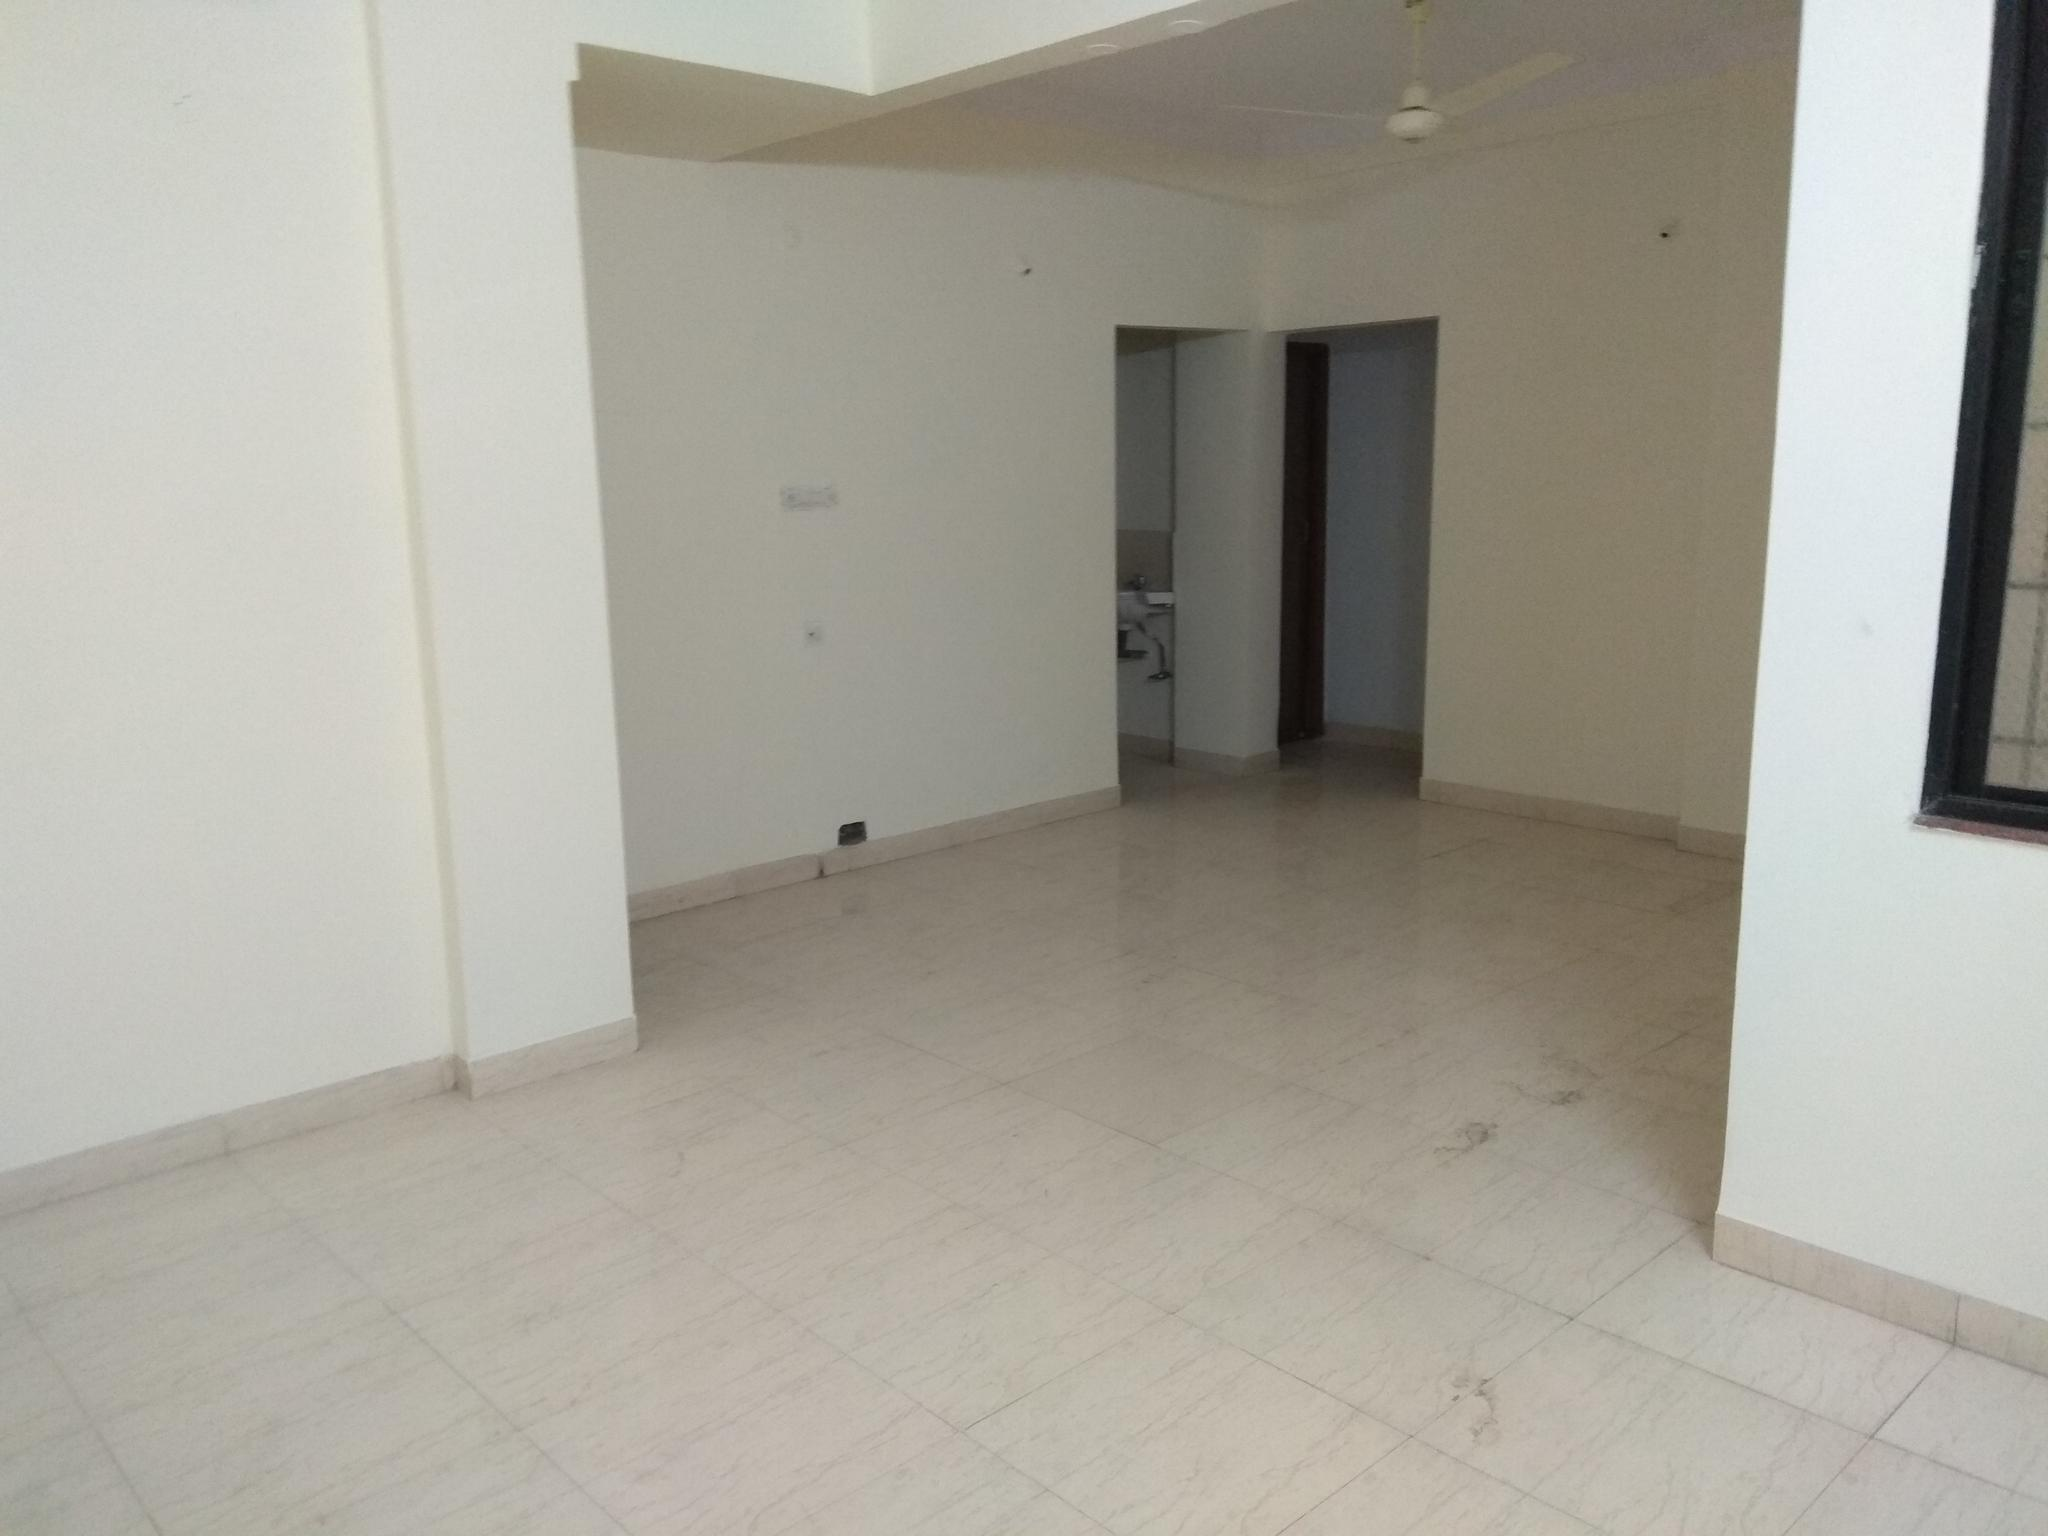 with wardrobe,2bed, fridge 2bhk posh flat for rent 13000 at khamla